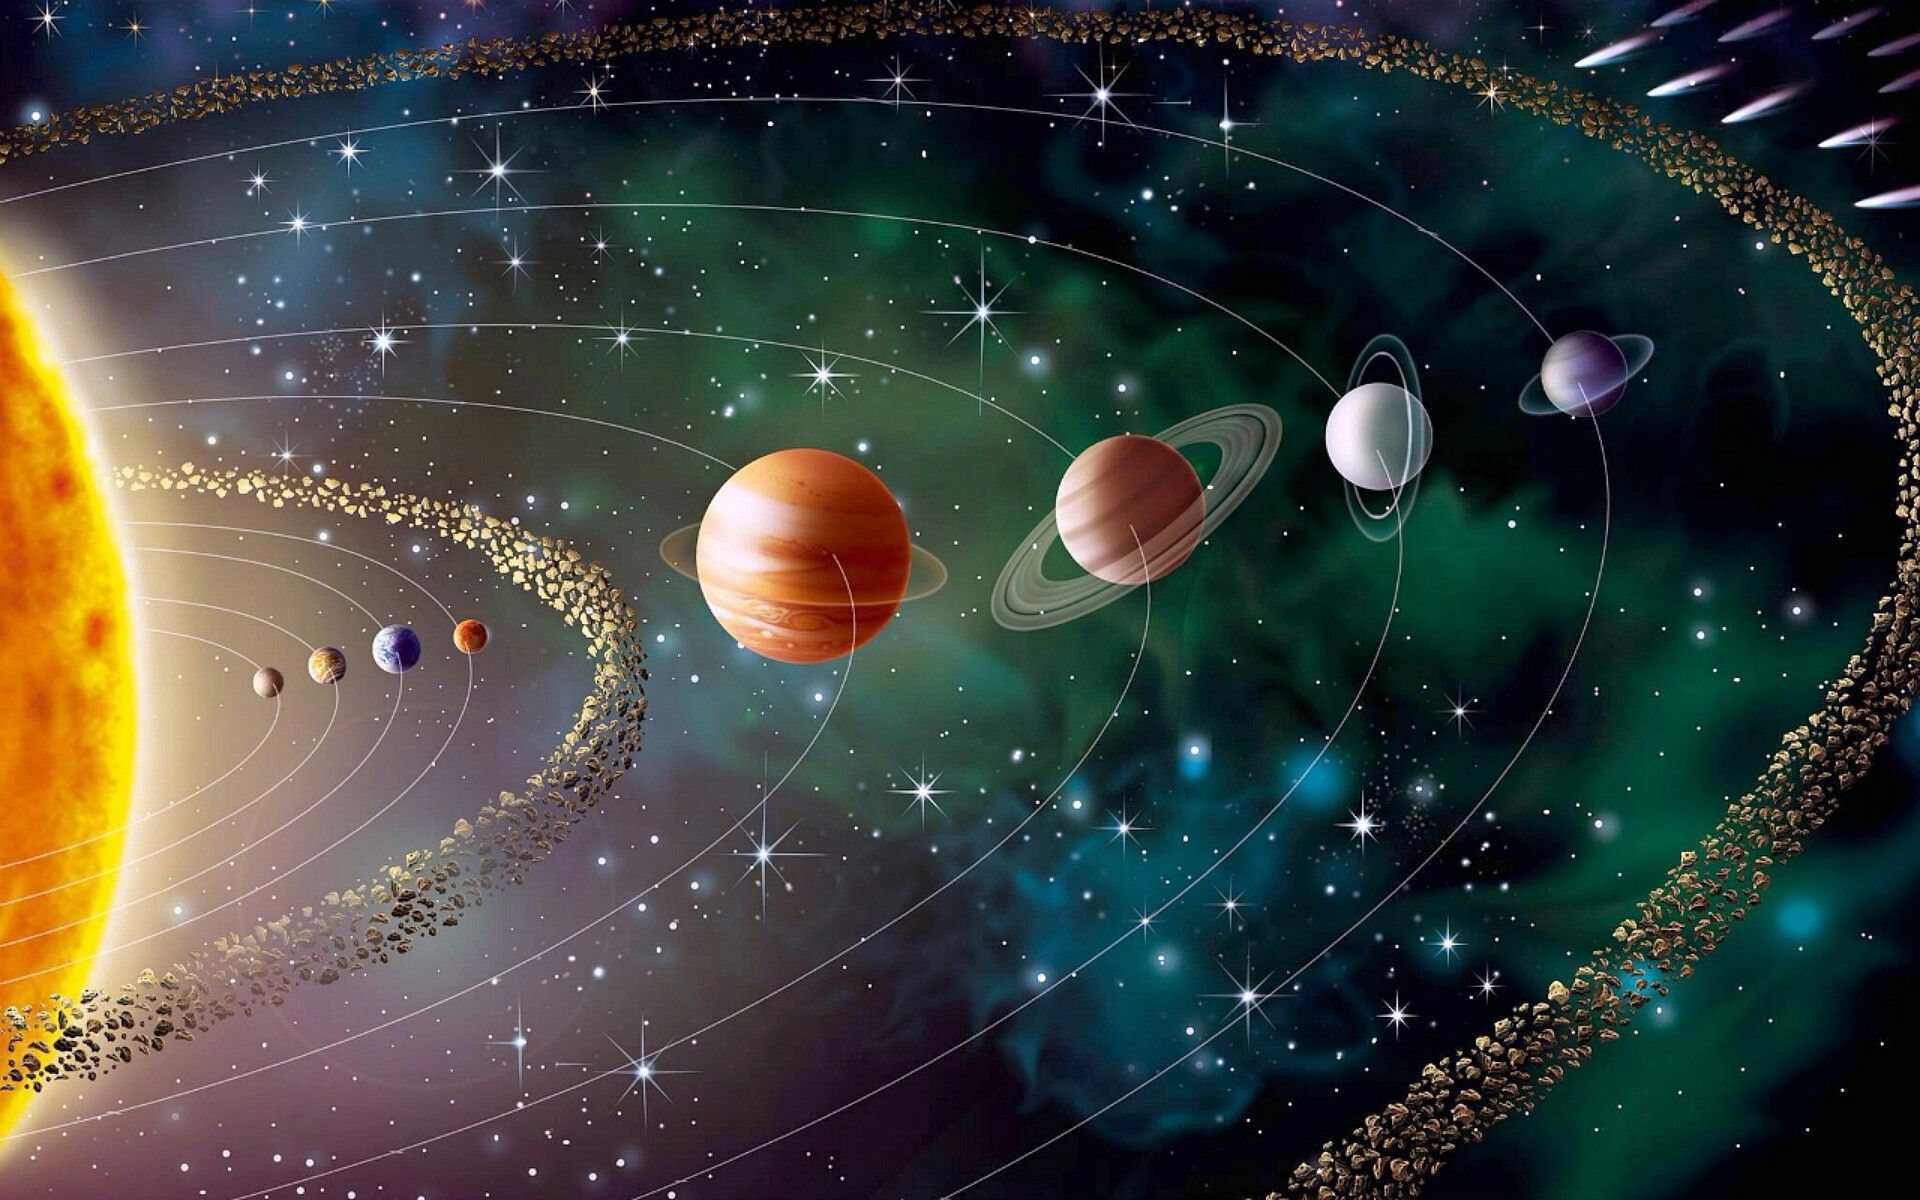 solar system images - HD1920×1200